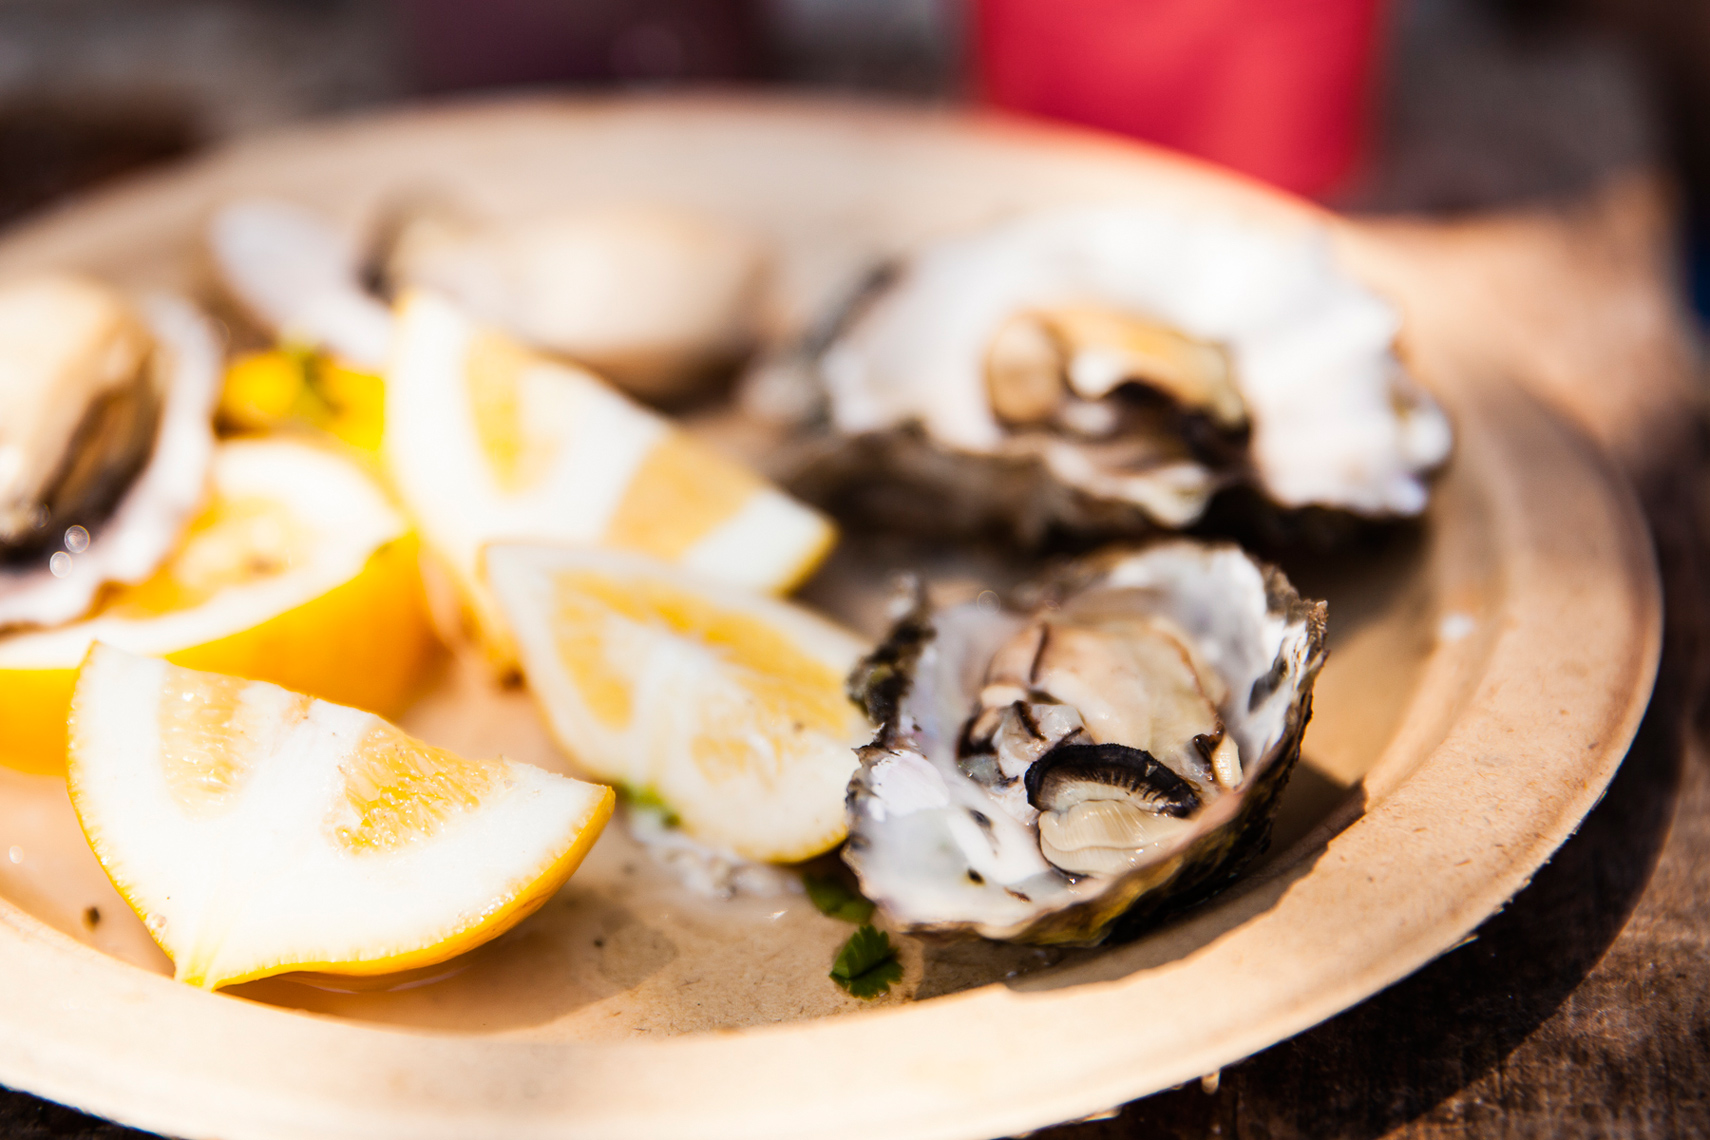 Amanda_Hibbert_Photography_food_editorial_oysters_seafood__MG_8065_sRGB_DesignX